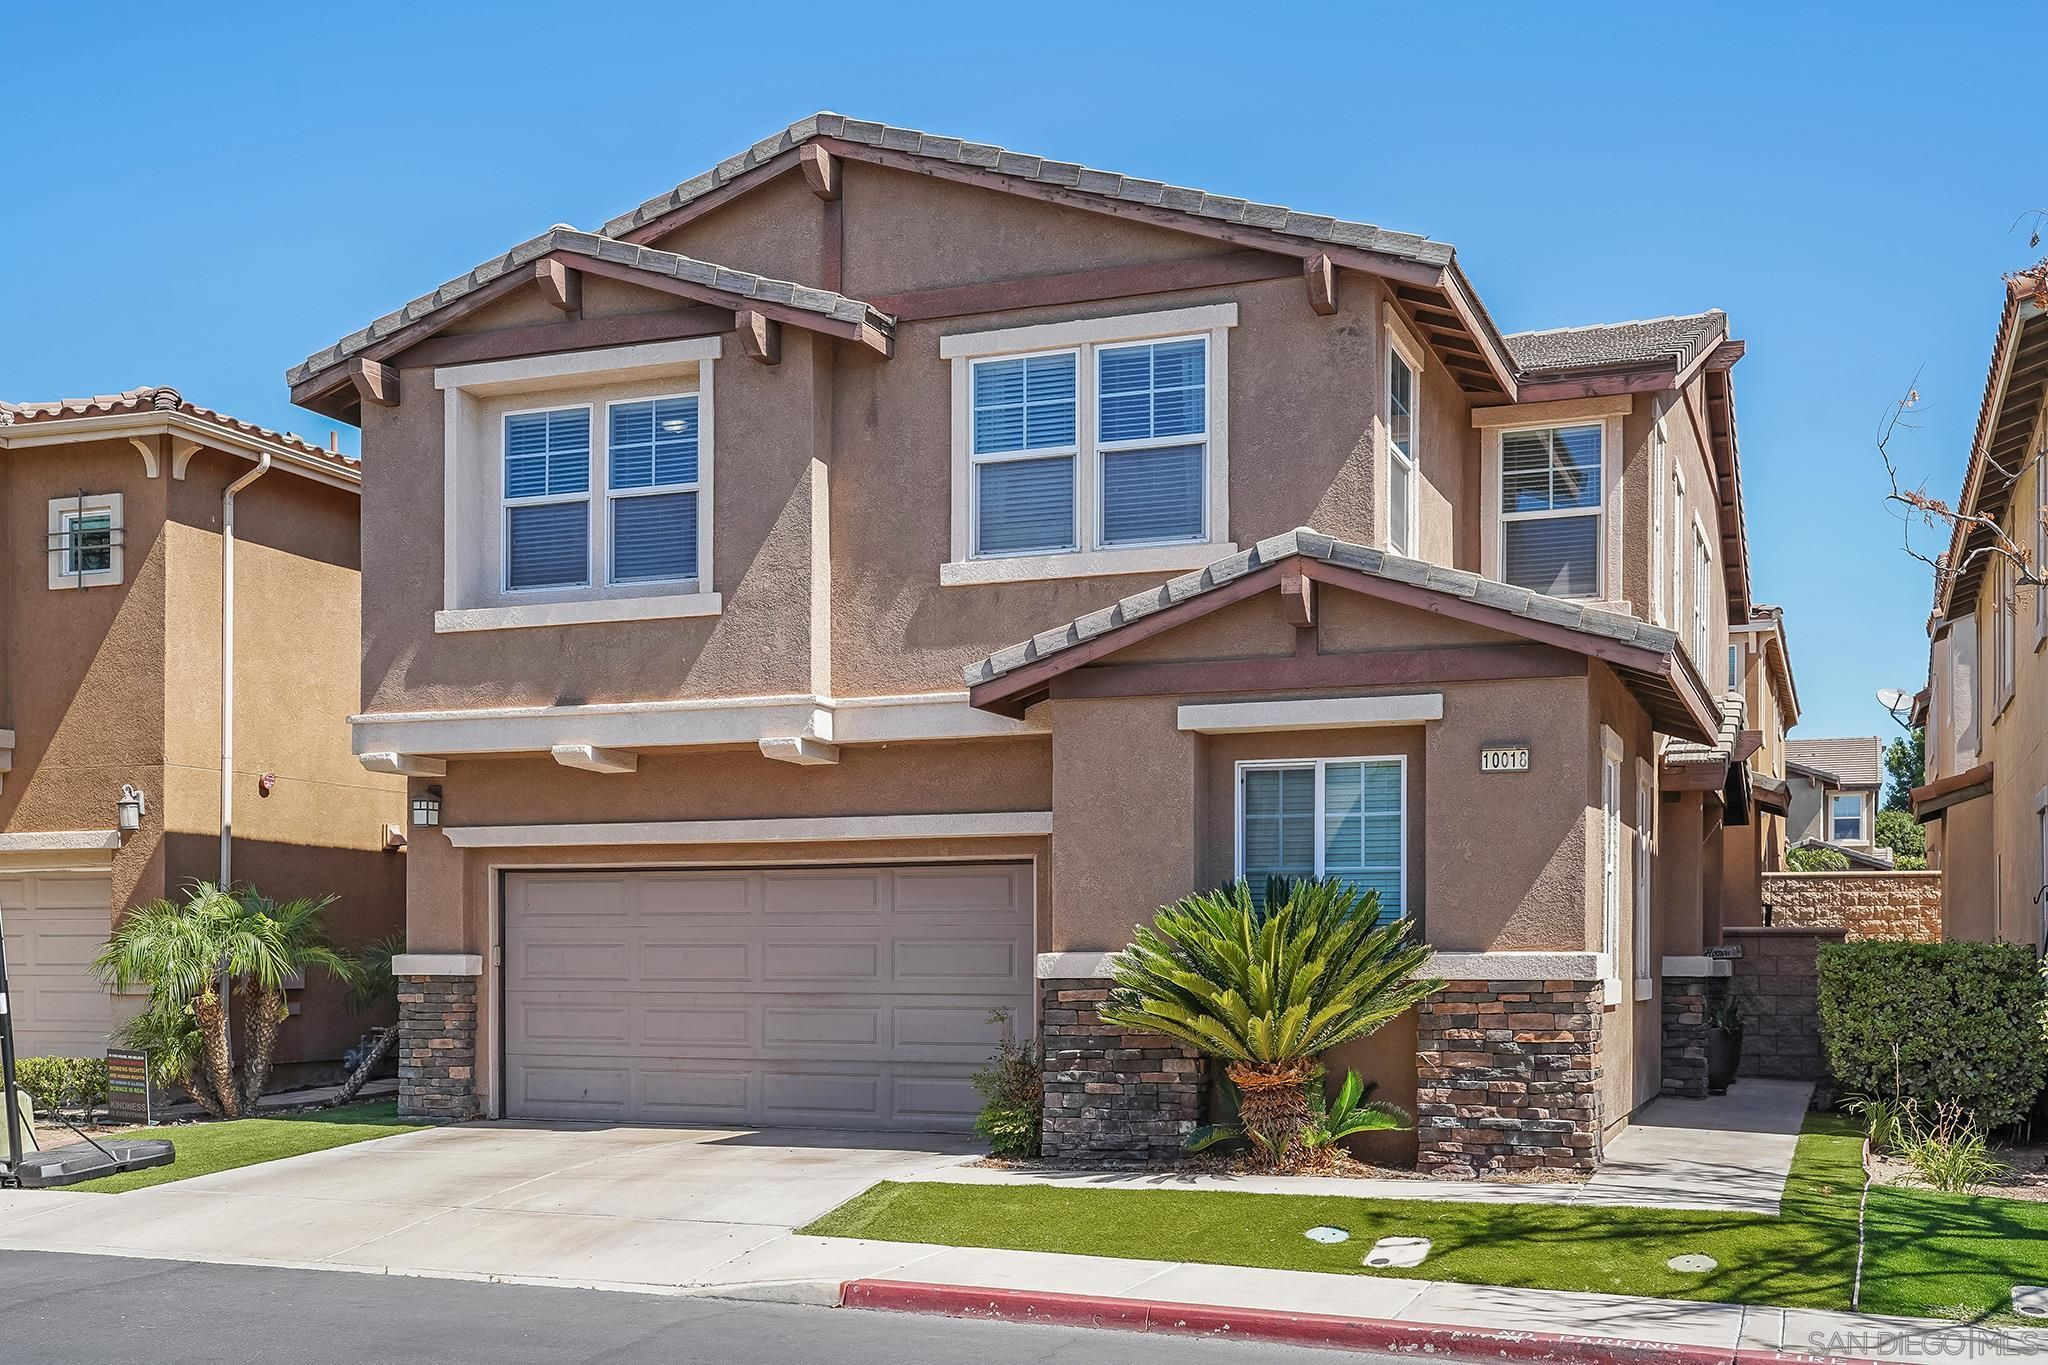 Main Photo: SANTEE House for sale : 5 bedrooms : 10018 Merry Brook Trl